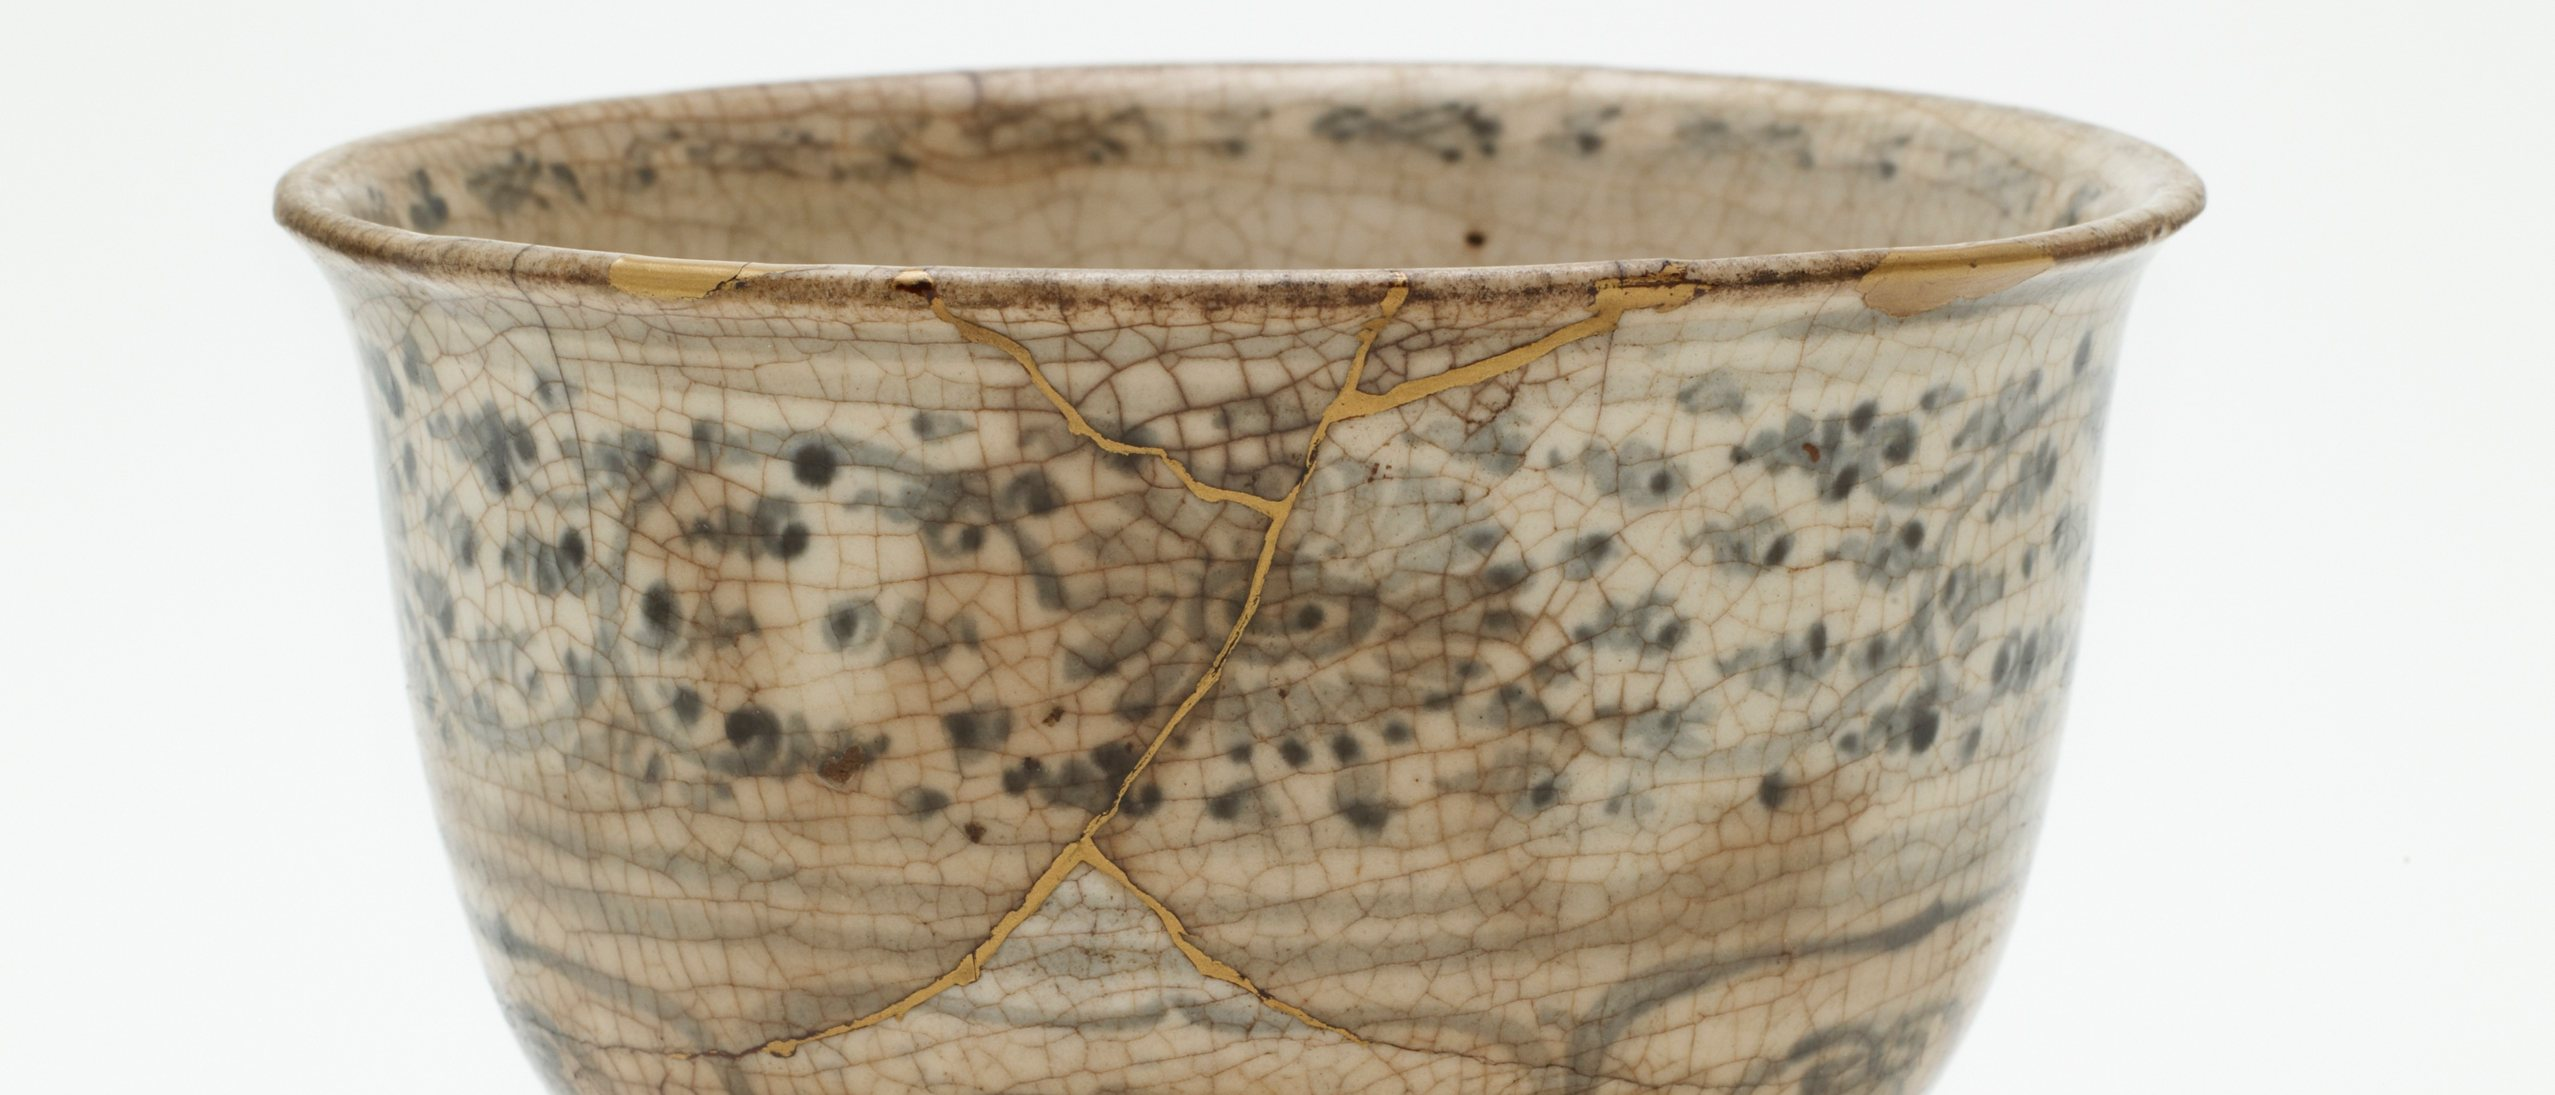 glazed stoneware bowl with painted designs . discolored cracks across surface